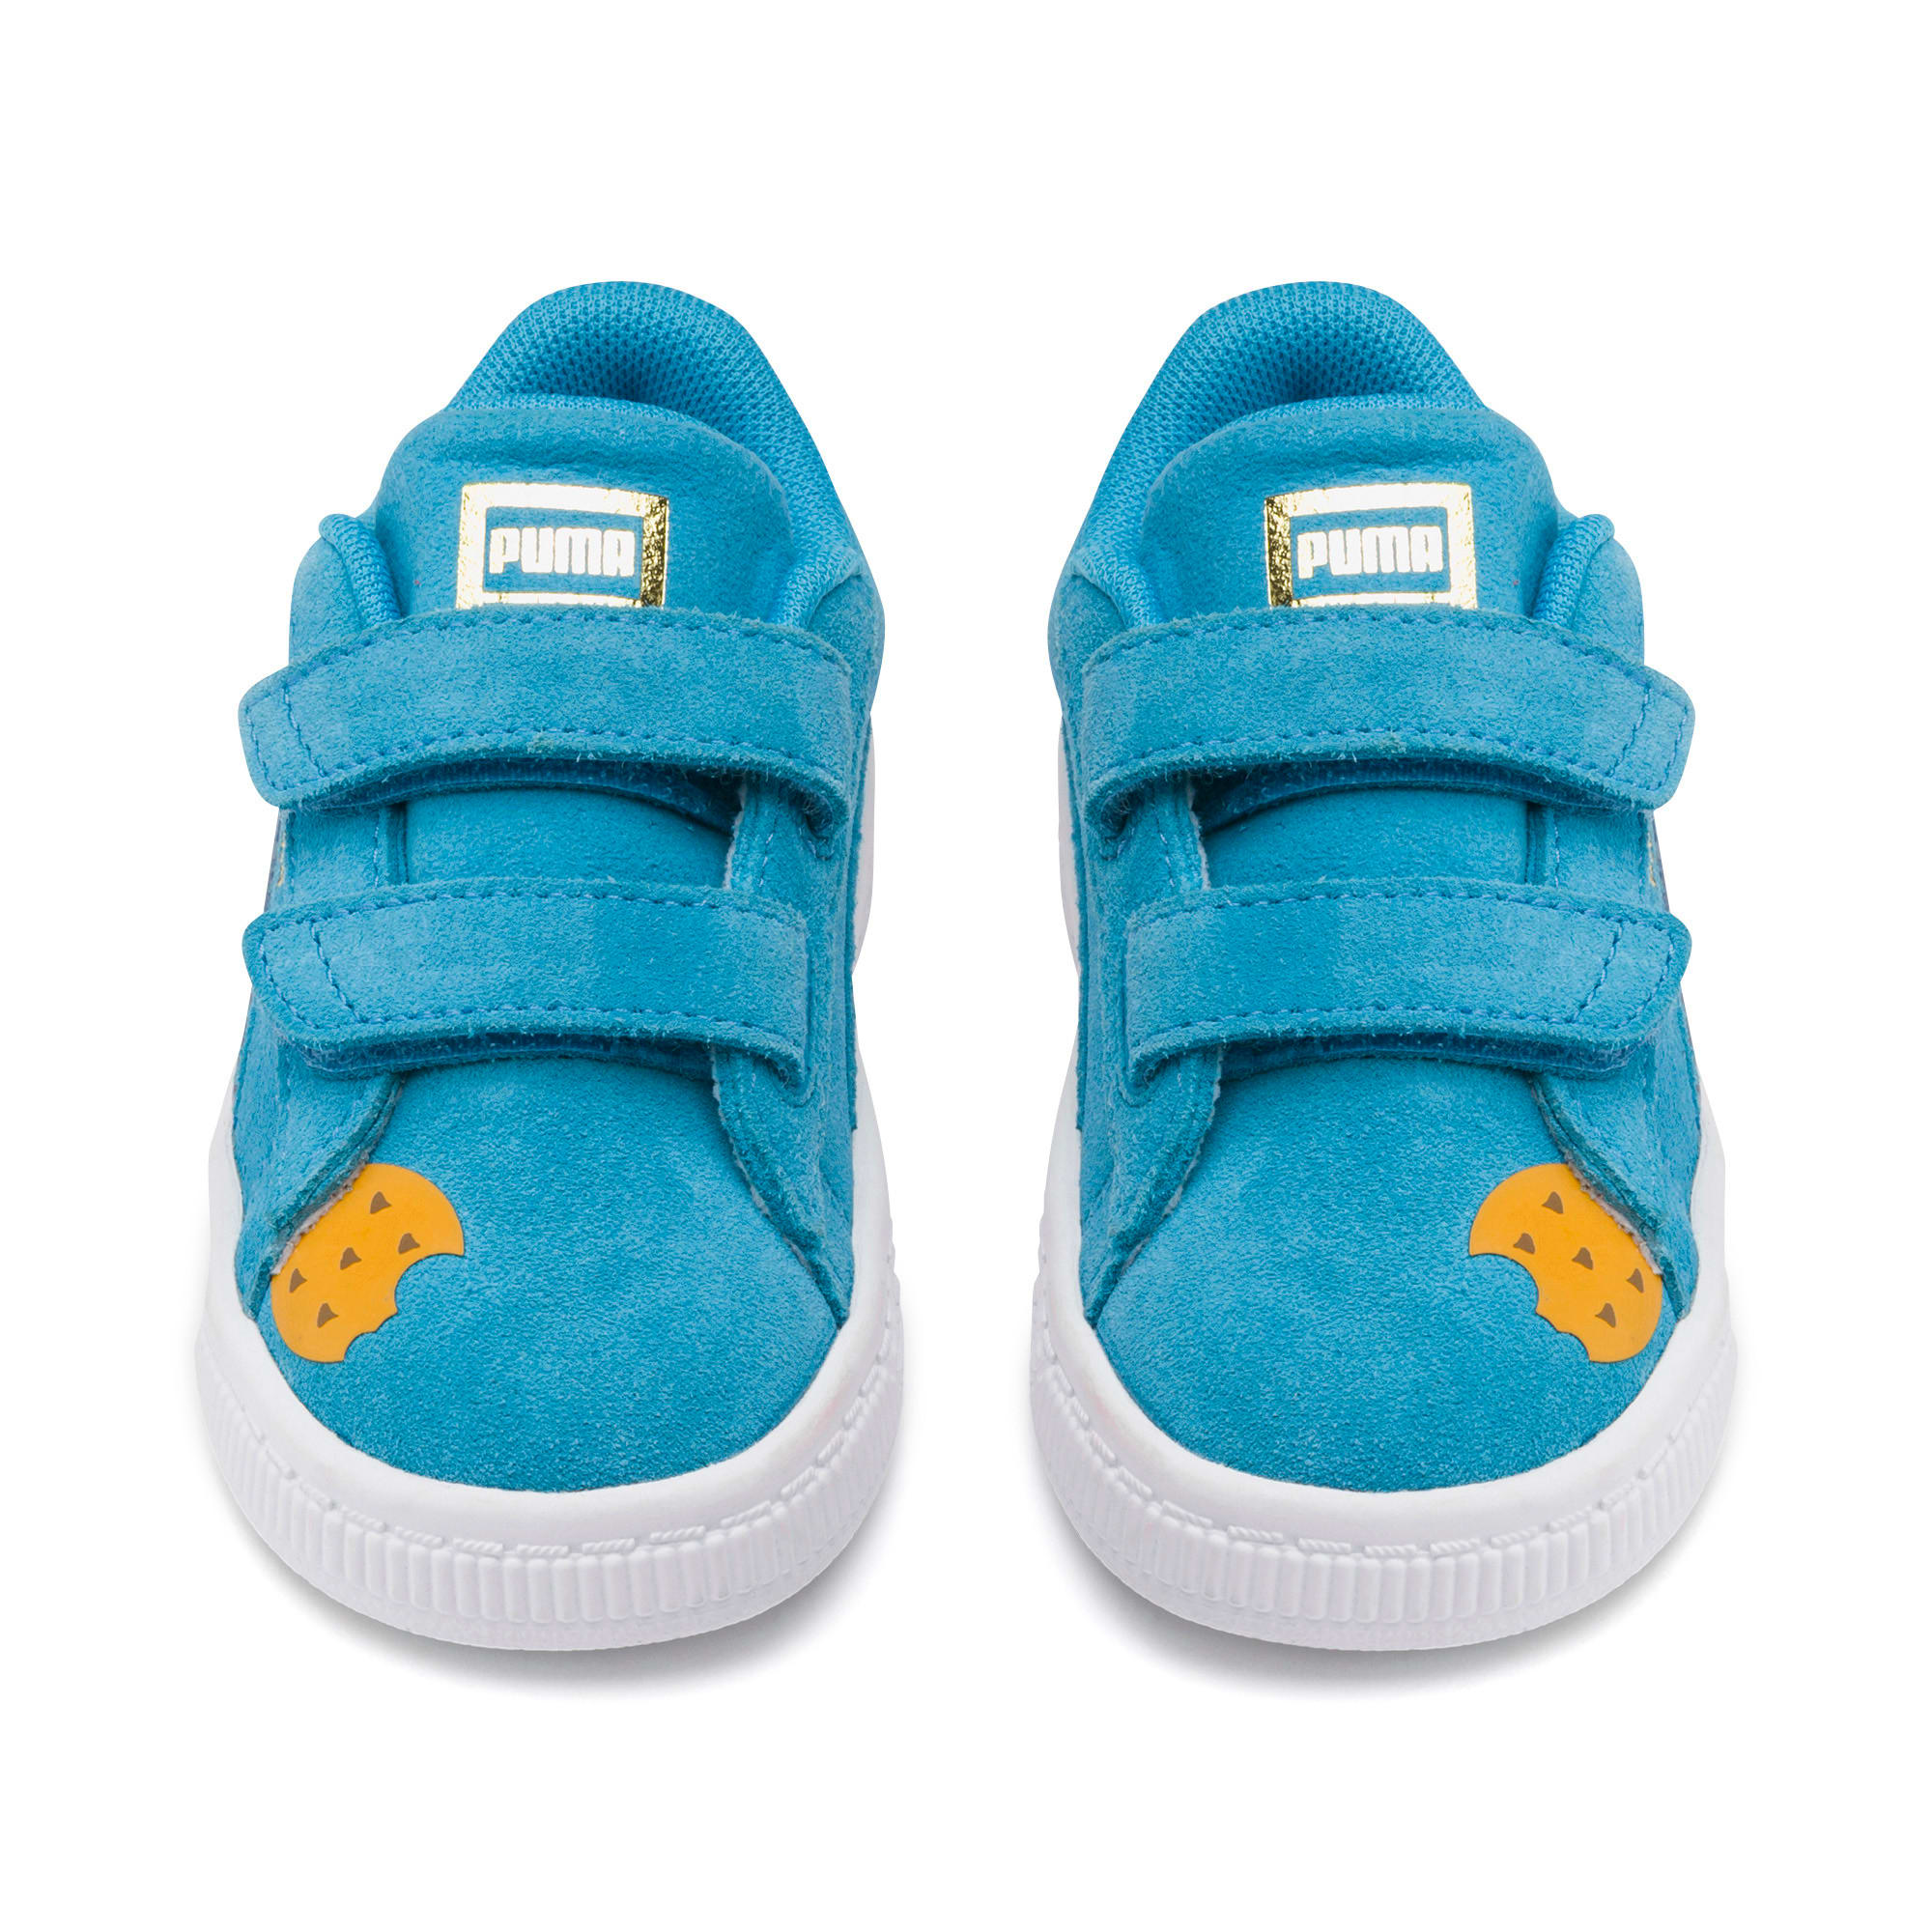 Thumbnail 7 of Sesame Street 50 Suede Statement Babies' Trainers, Bleu Azur-Puma White, medium